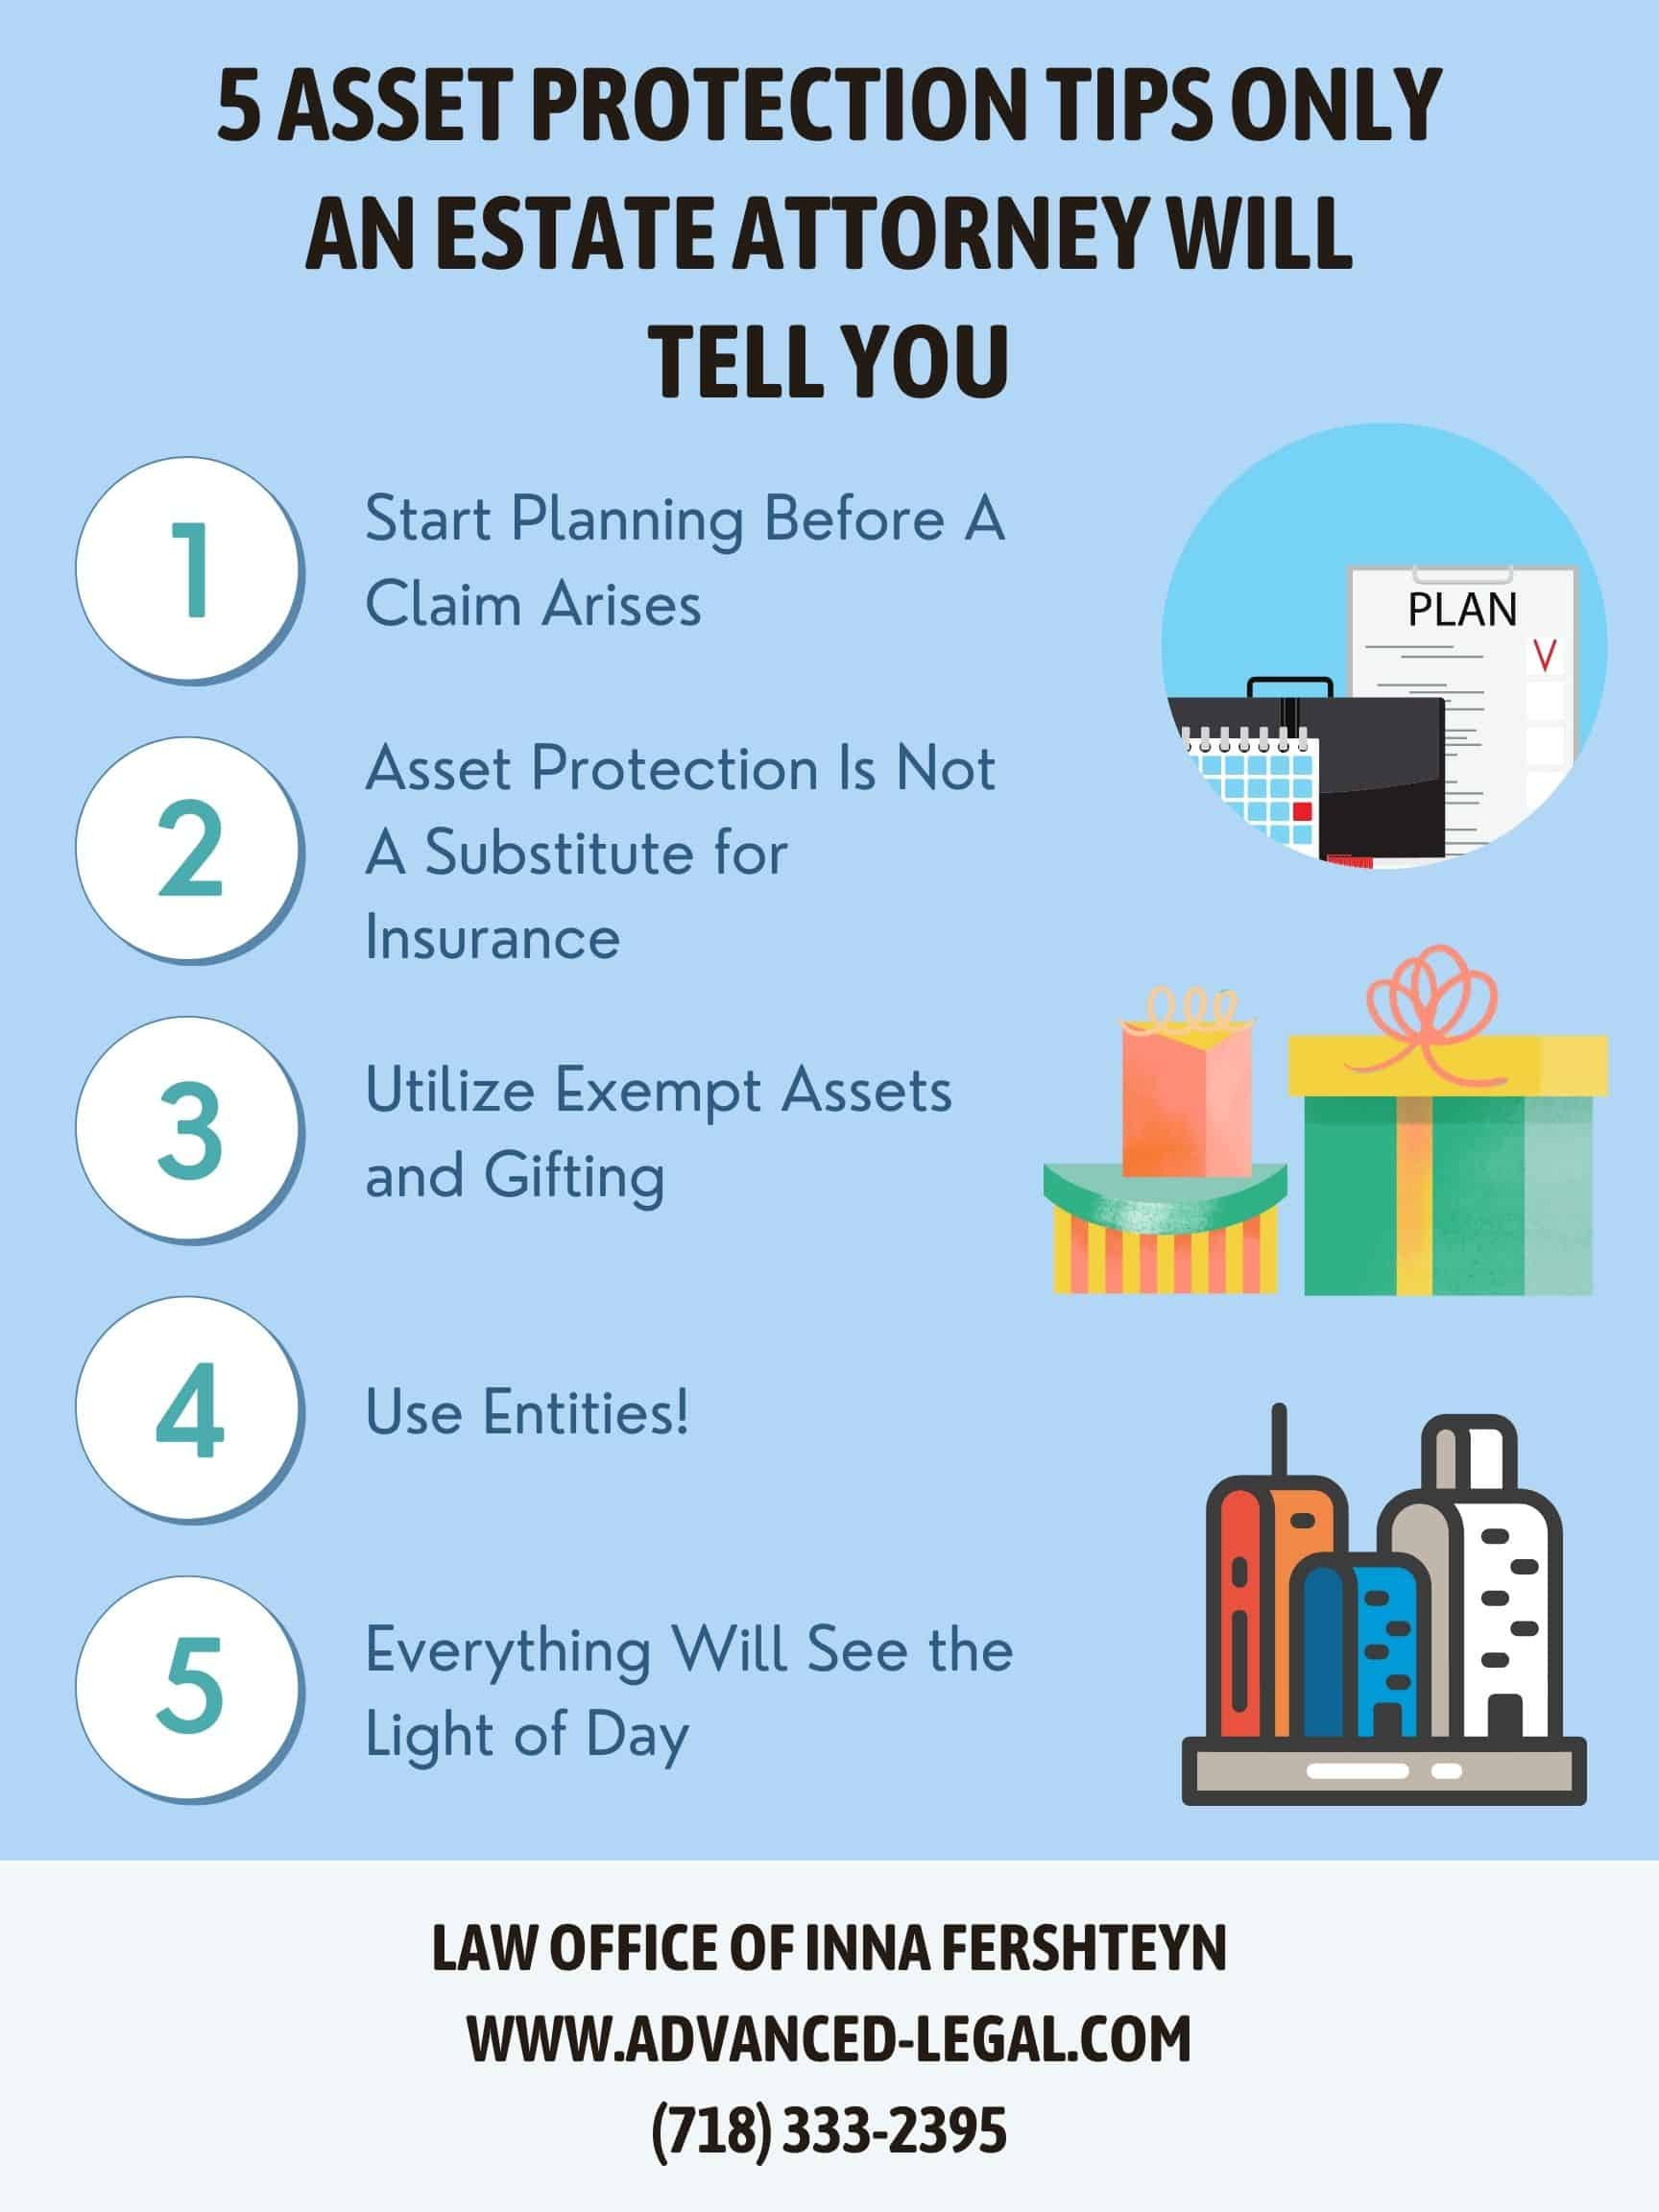 5 asset protection tips only an estate attorney will tell you